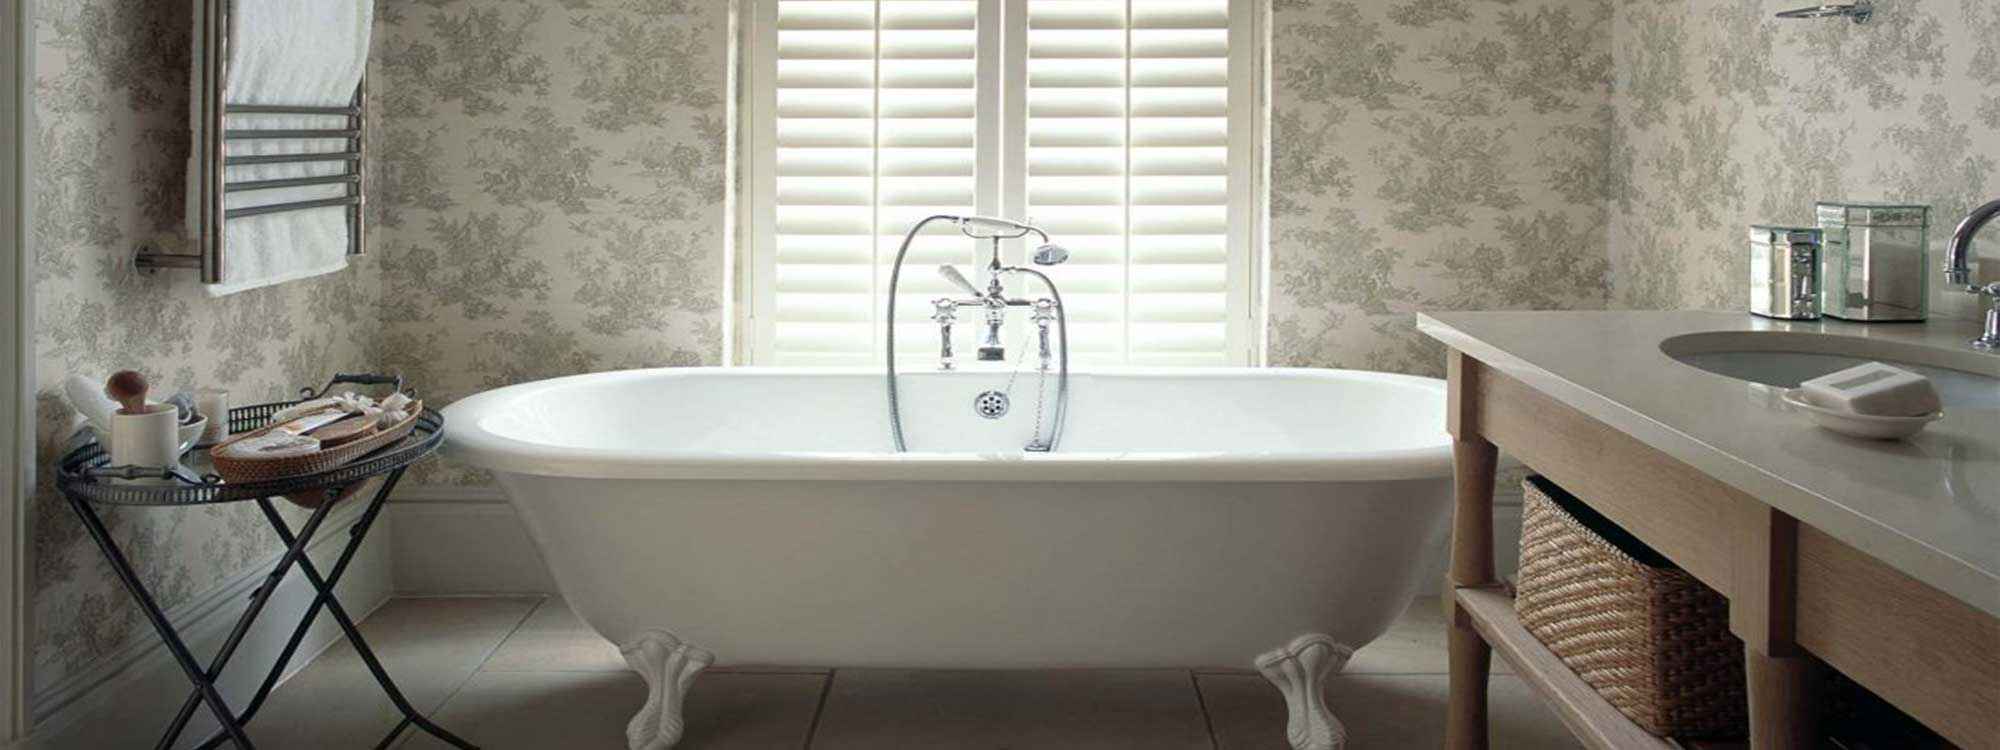 Woodbury-shutters-bathroom-wallpaper